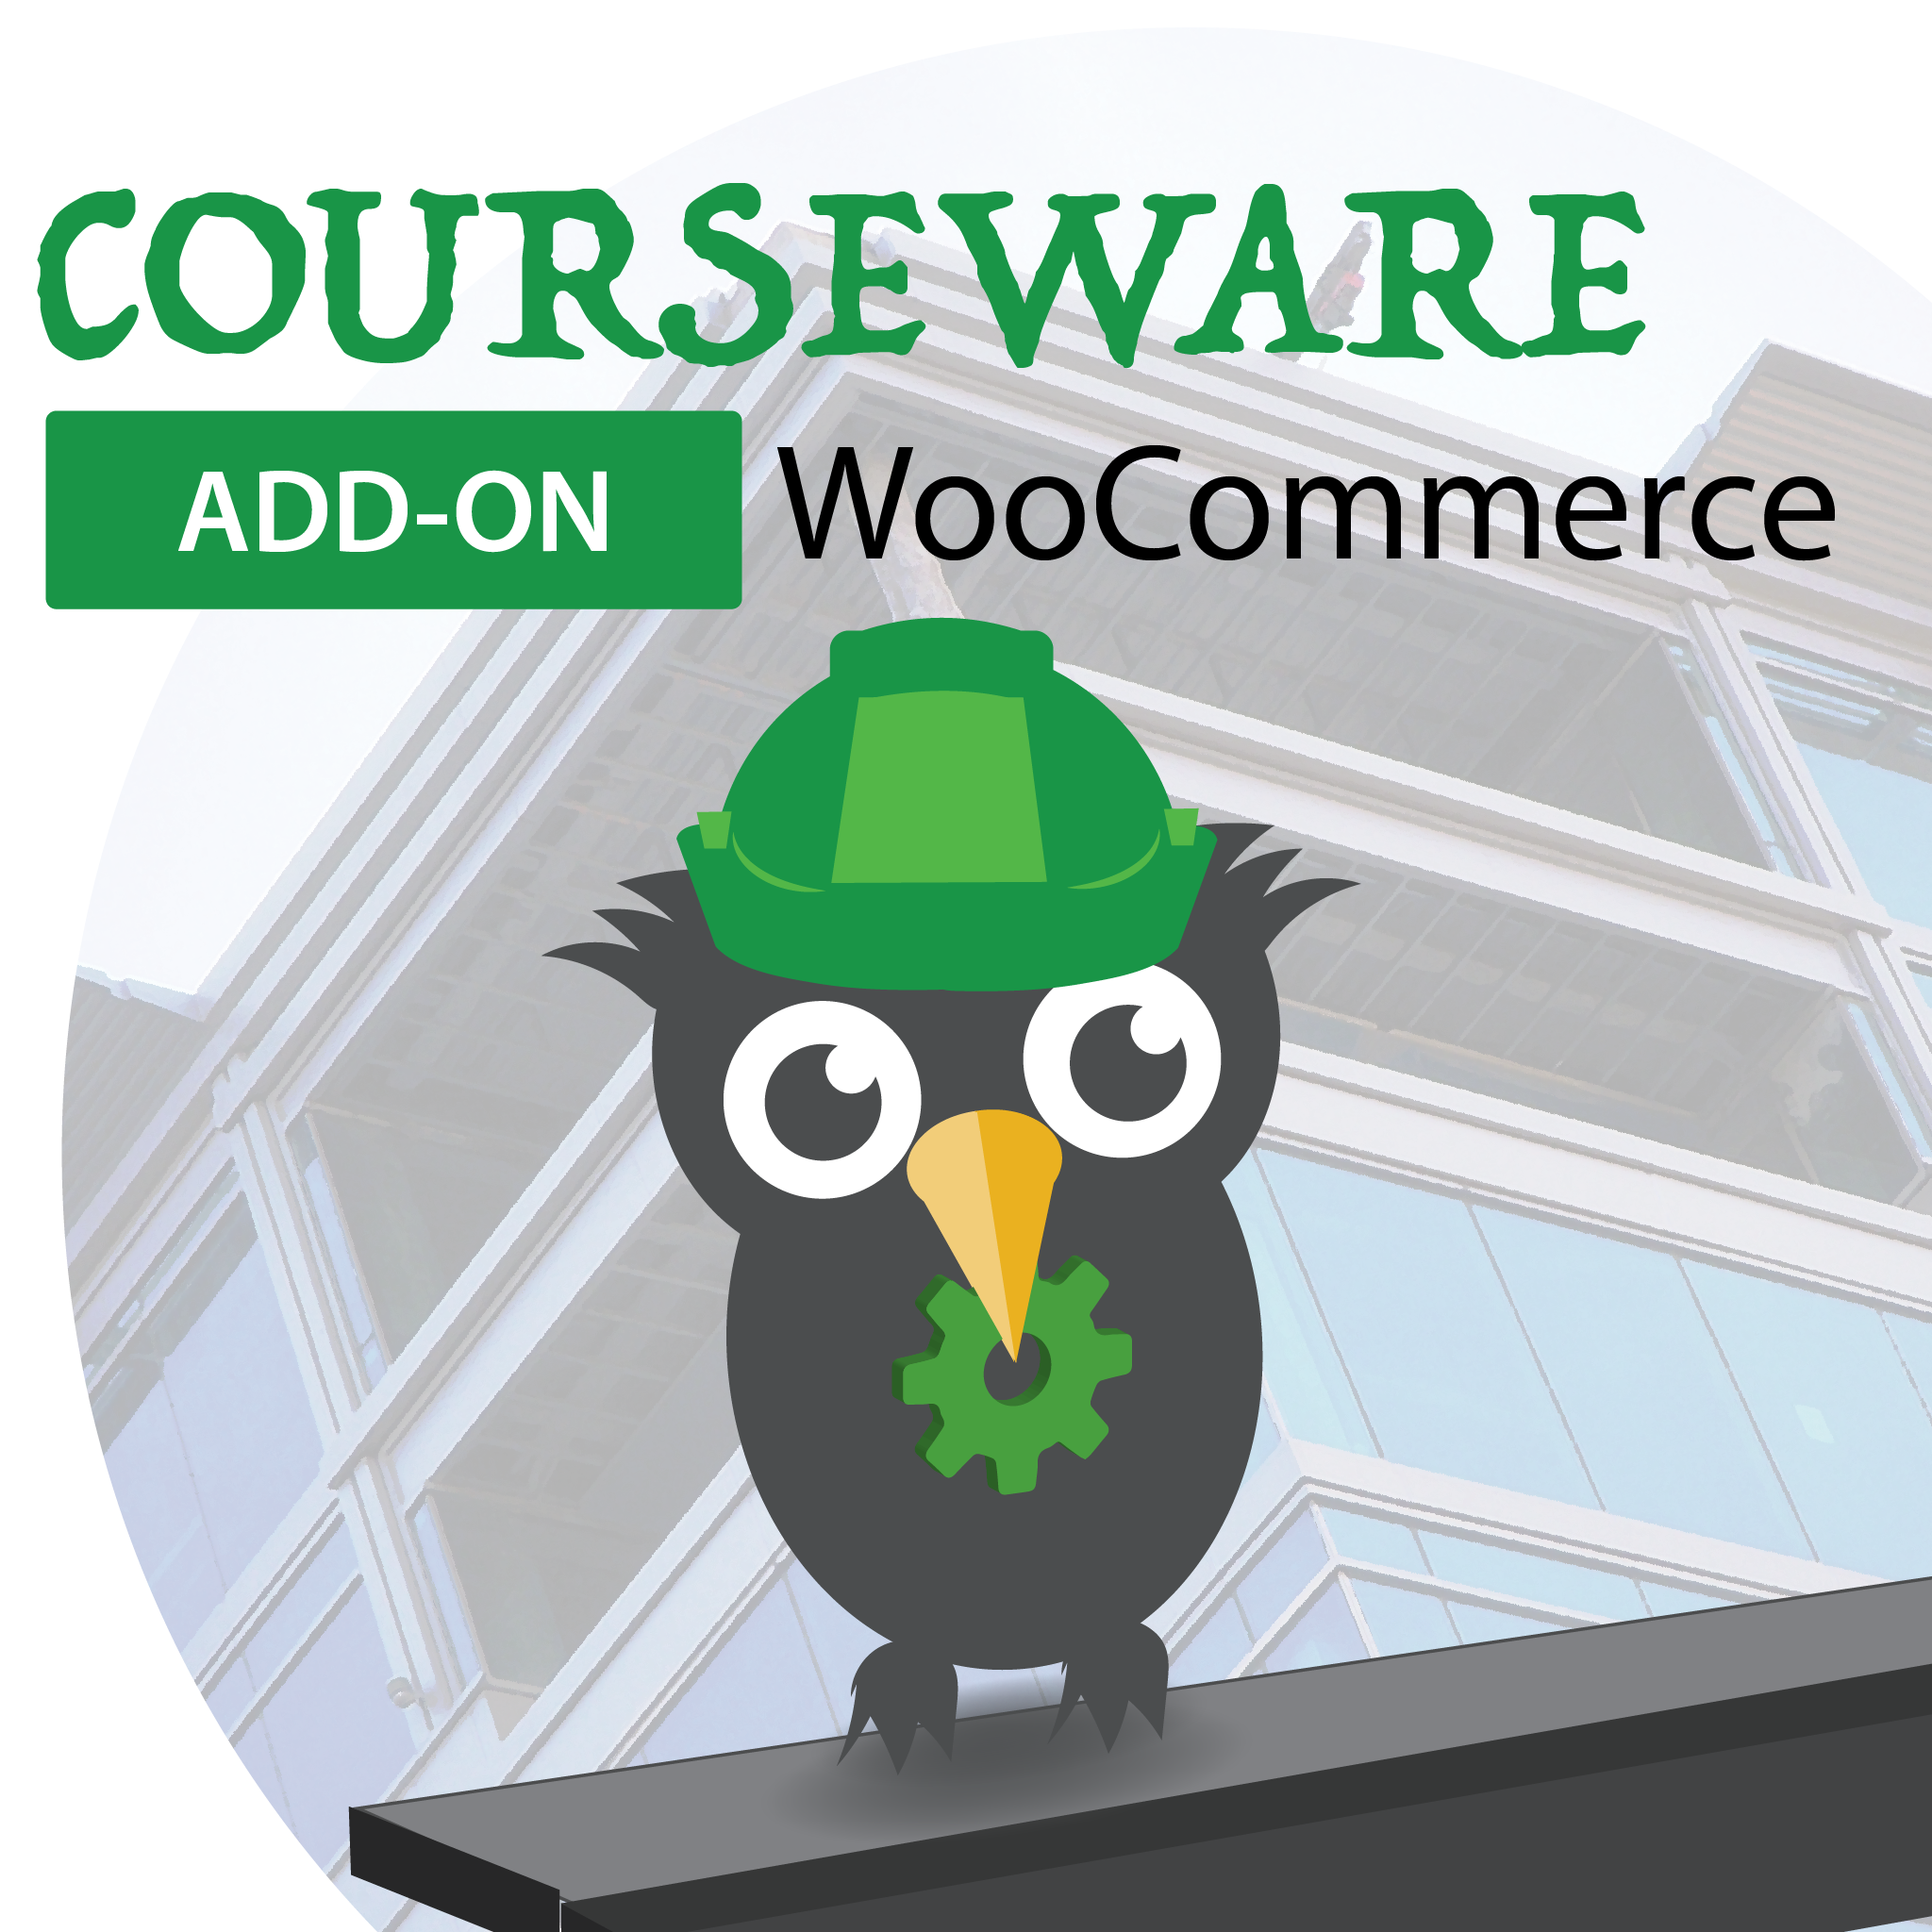 WP Courseware WooCommerce Add-On